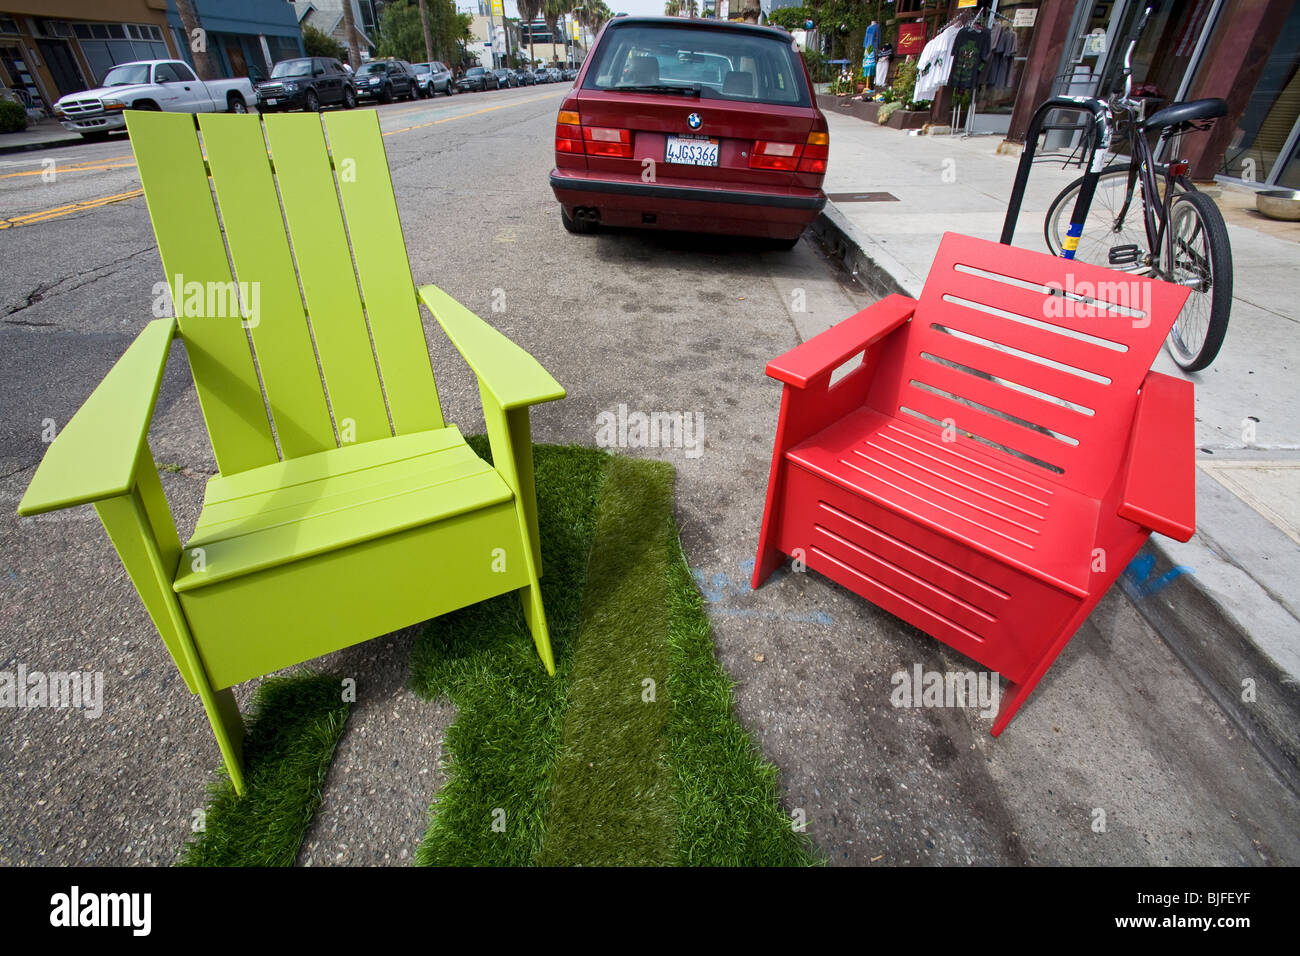 Recycled Plastic Outdoor Furniture By Loll Designs, Made From Recycled High  Density Polyethylene (HDPE).